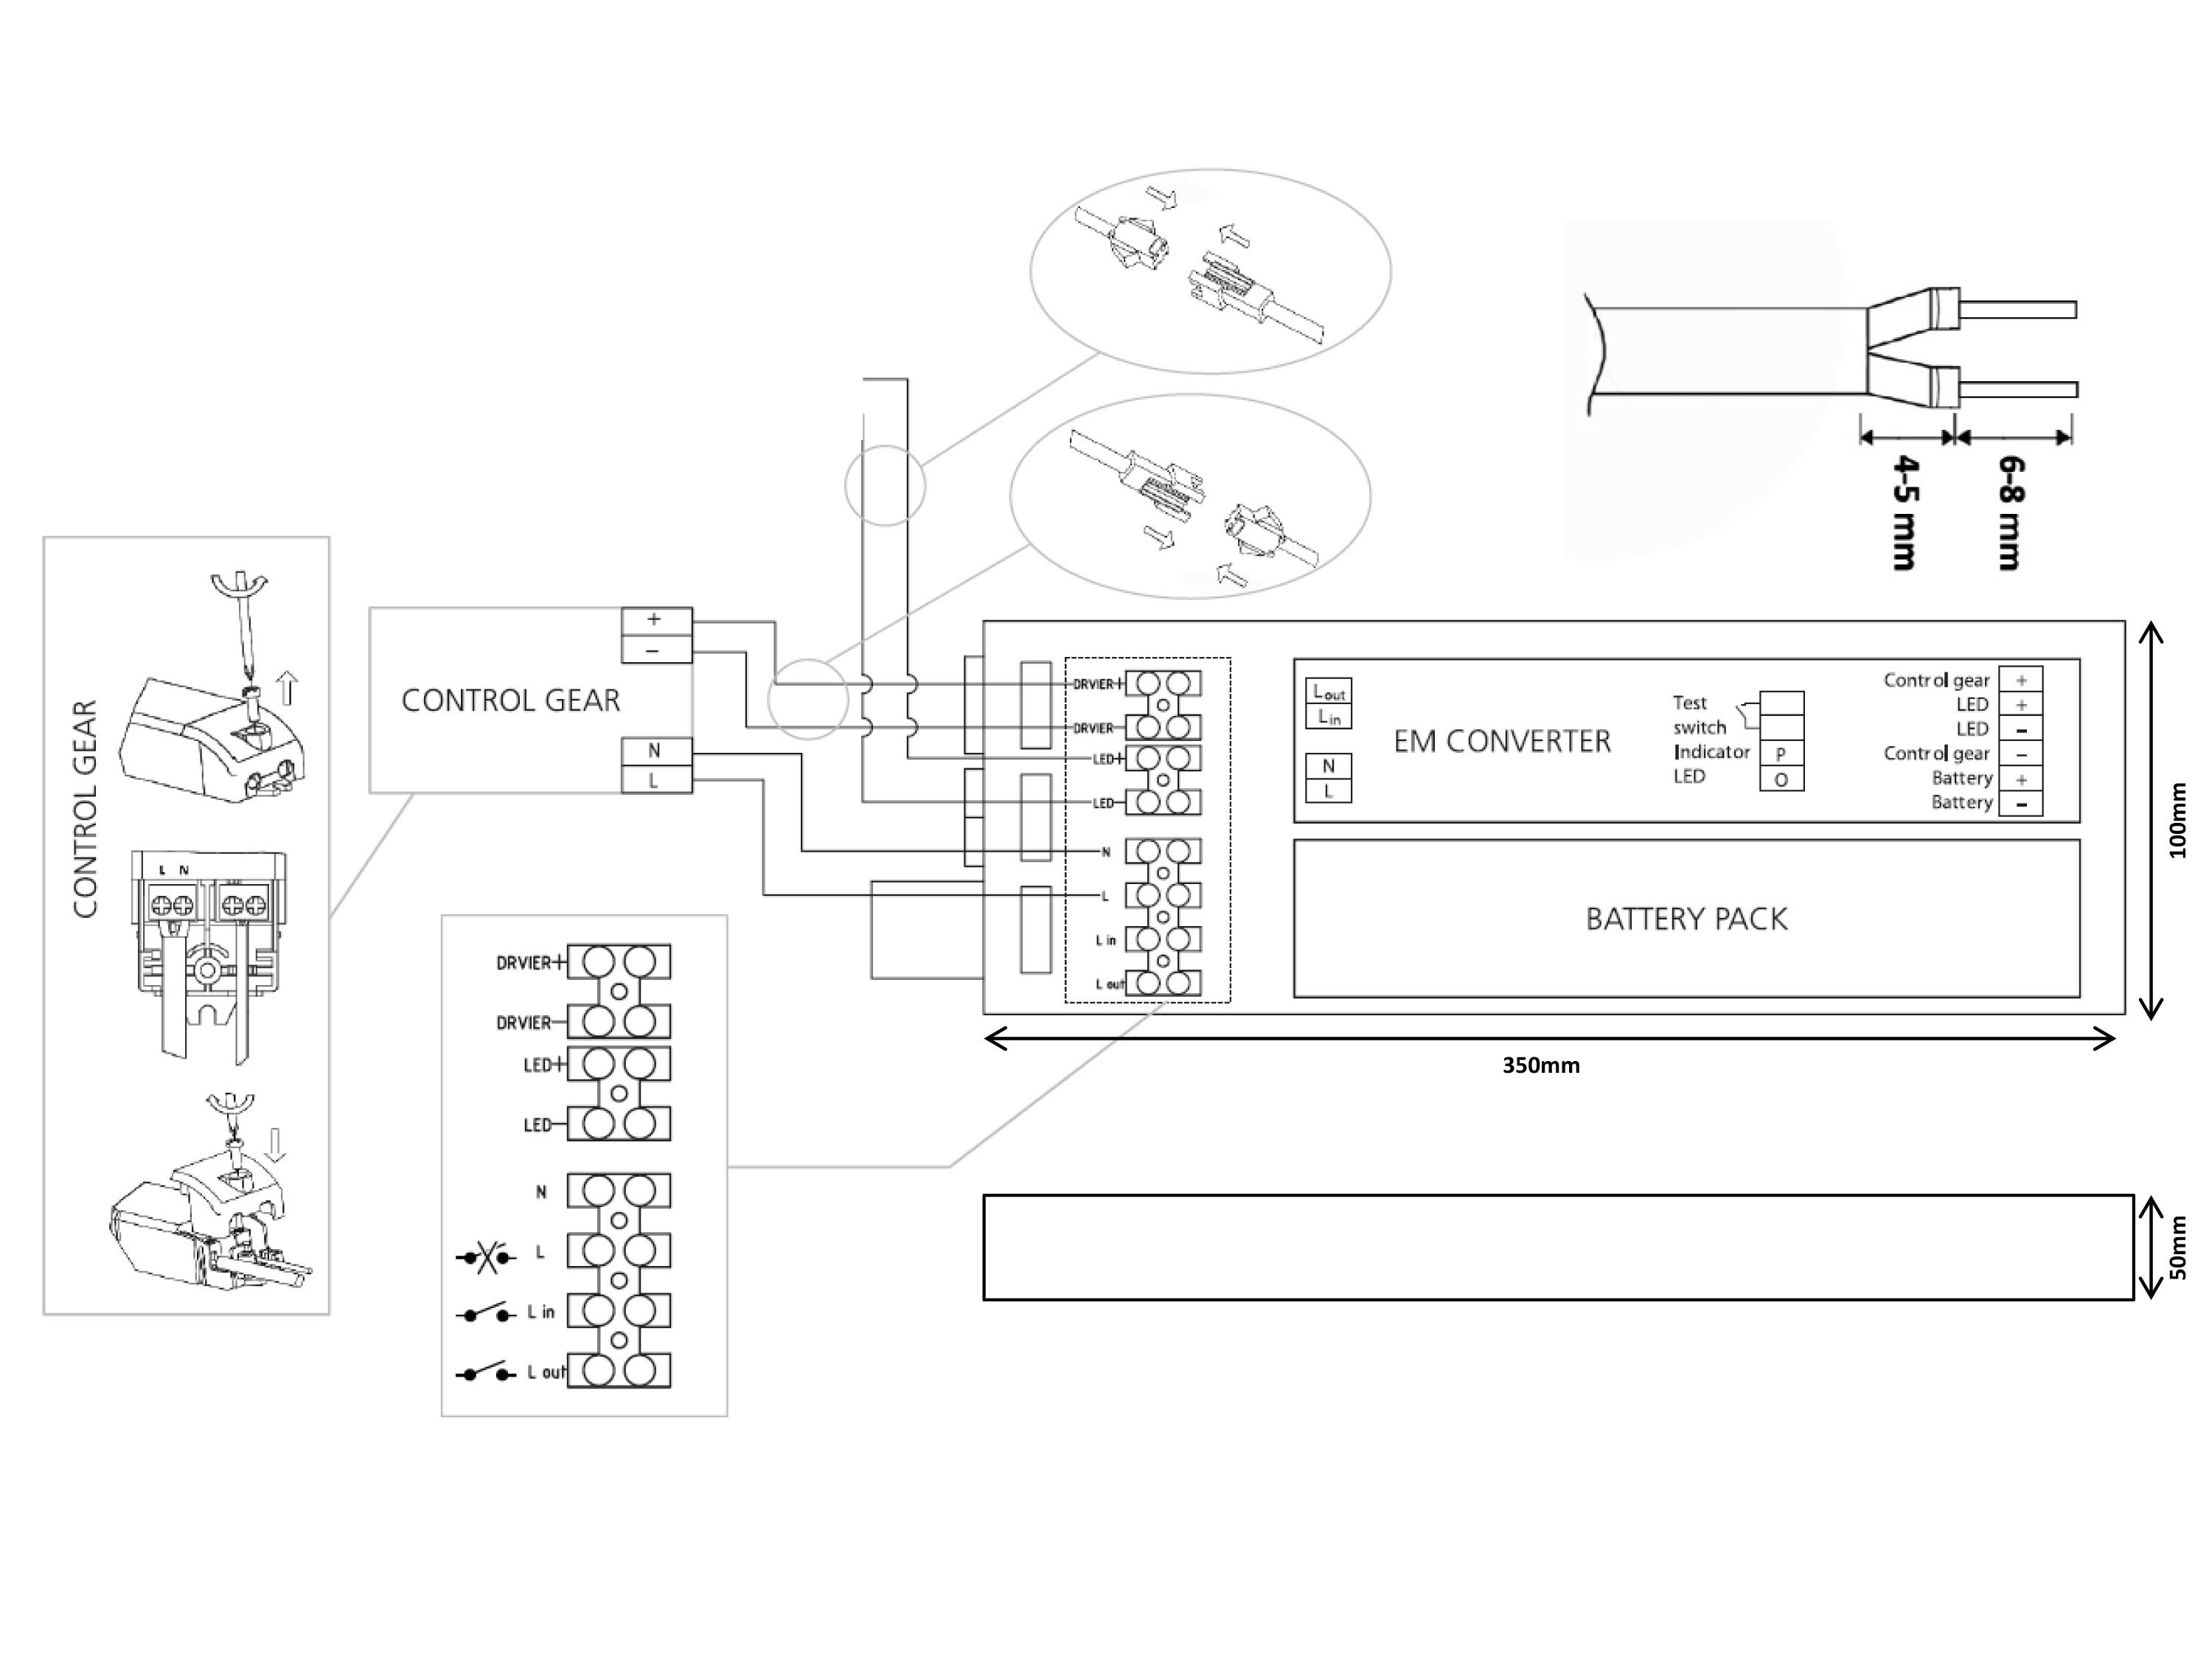 http://v2.static.sylvania-lighting.online/Hybris_V2/3031832/Technical_Drawings/EN/Syl-Lighter-LED-II-EMG-Pack---Line-Diagram.jpg